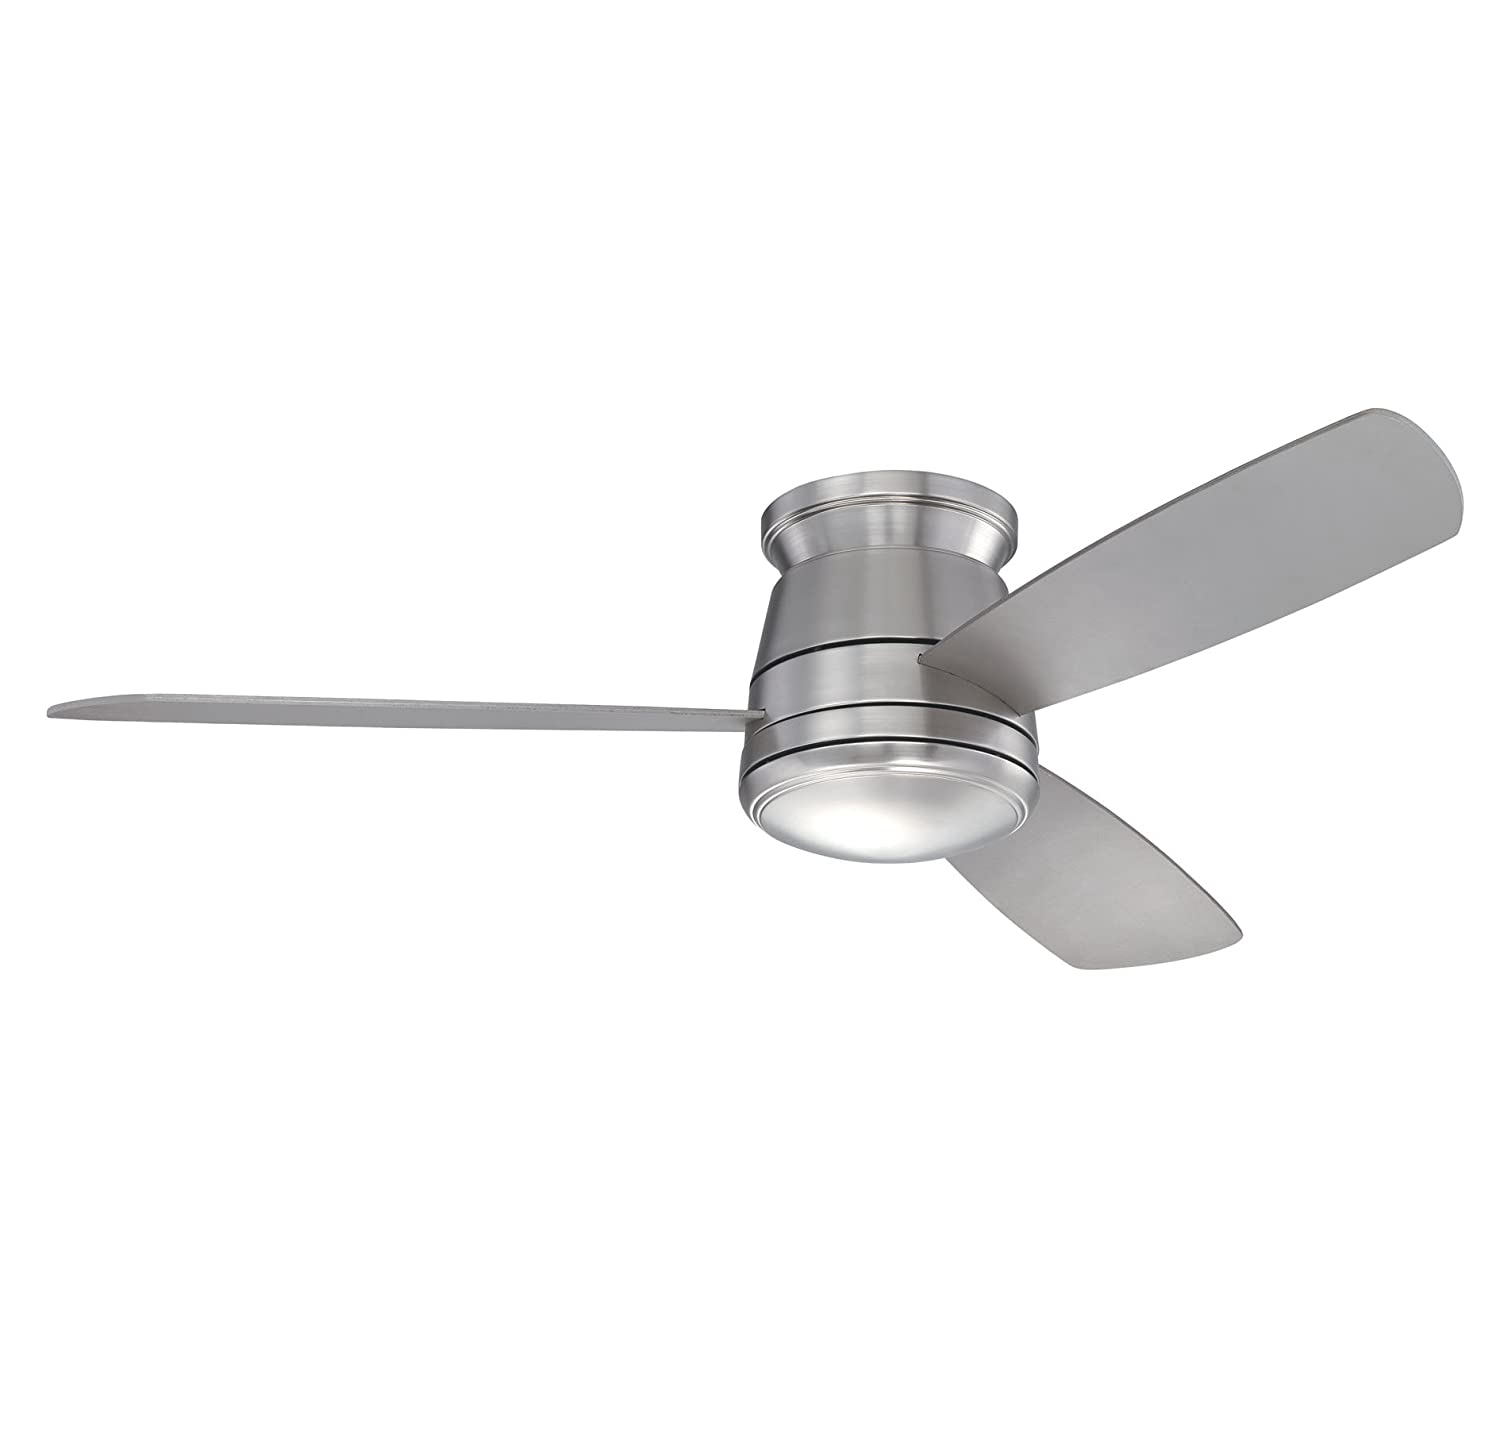 Savoy house 52 417h 3sv sn polaris hugger 52 inch ceiling fan satin savoy house 52 417h 3sv sn polaris hugger 52 inch ceiling fan satin nickel close to ceiling light fixtures amazon aloadofball Gallery